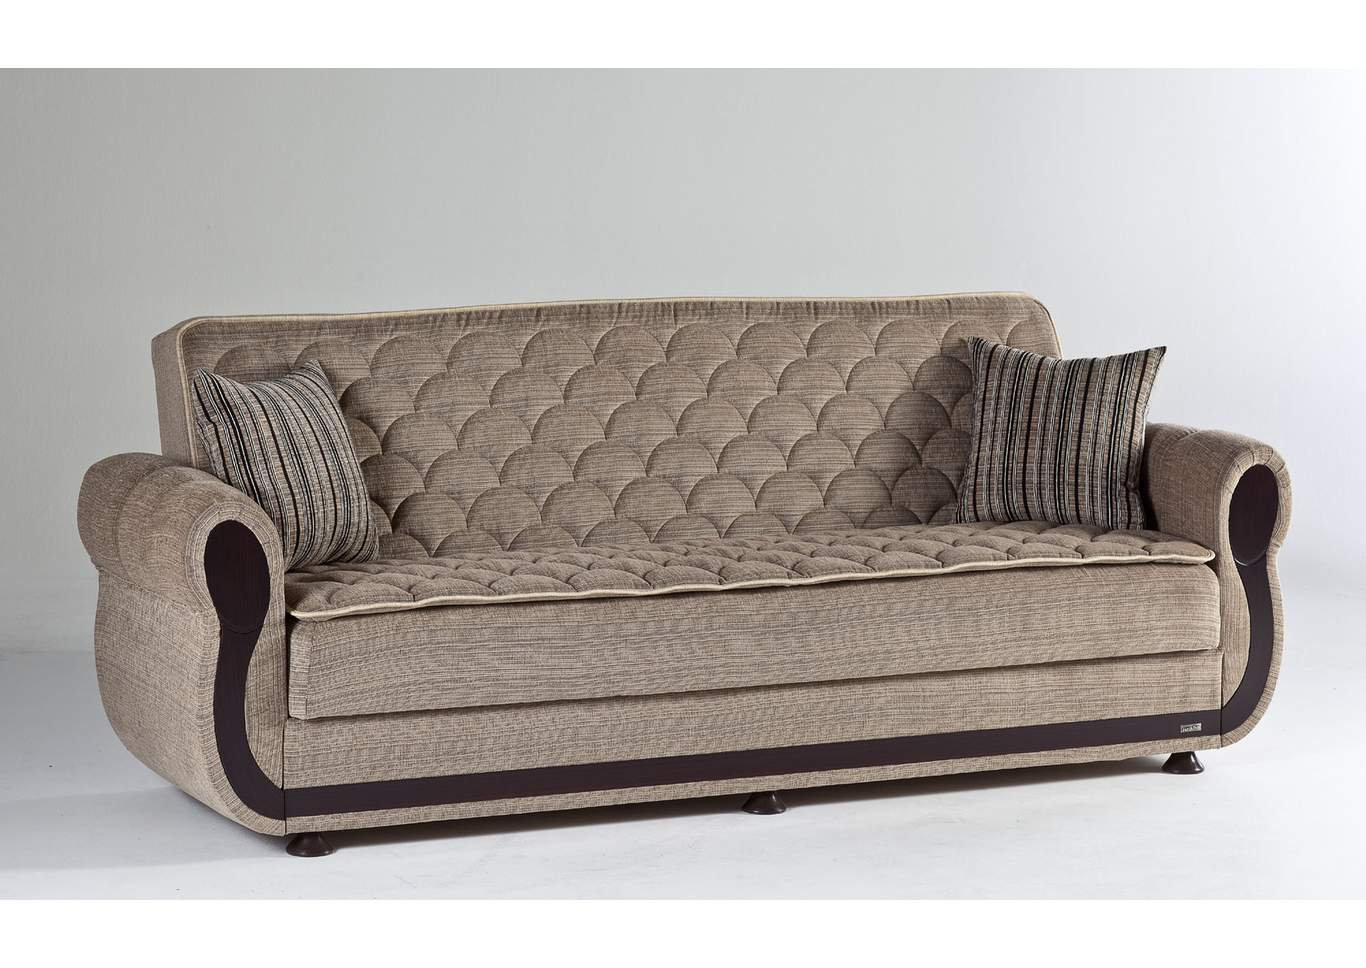 Argos Zilkade Light Brown 3 Seat Sleeper Sofa W/ Storage,Hudson Furniture & Bedding